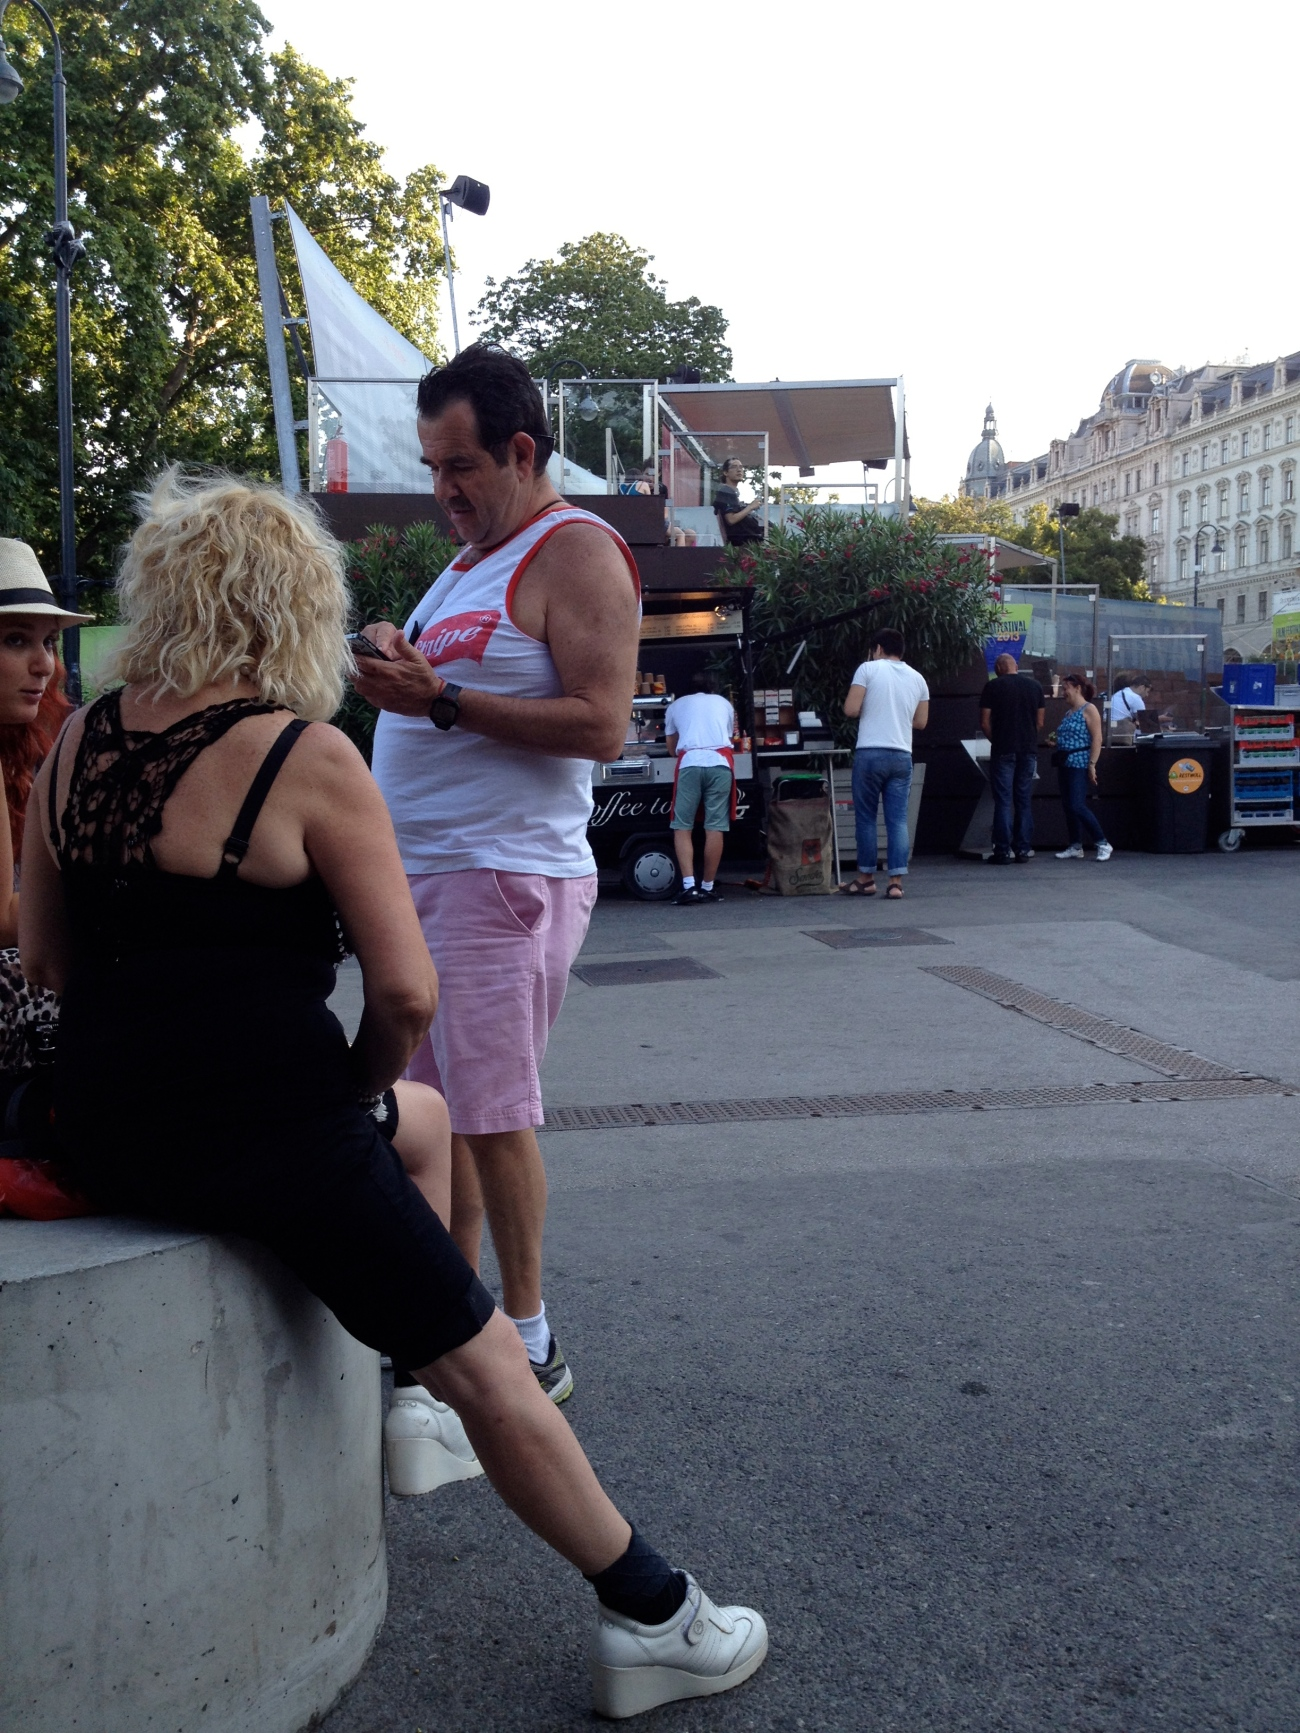 Pink shorts, Red Stripe beer tank top, and Syl Stallone's mom all in one shot.